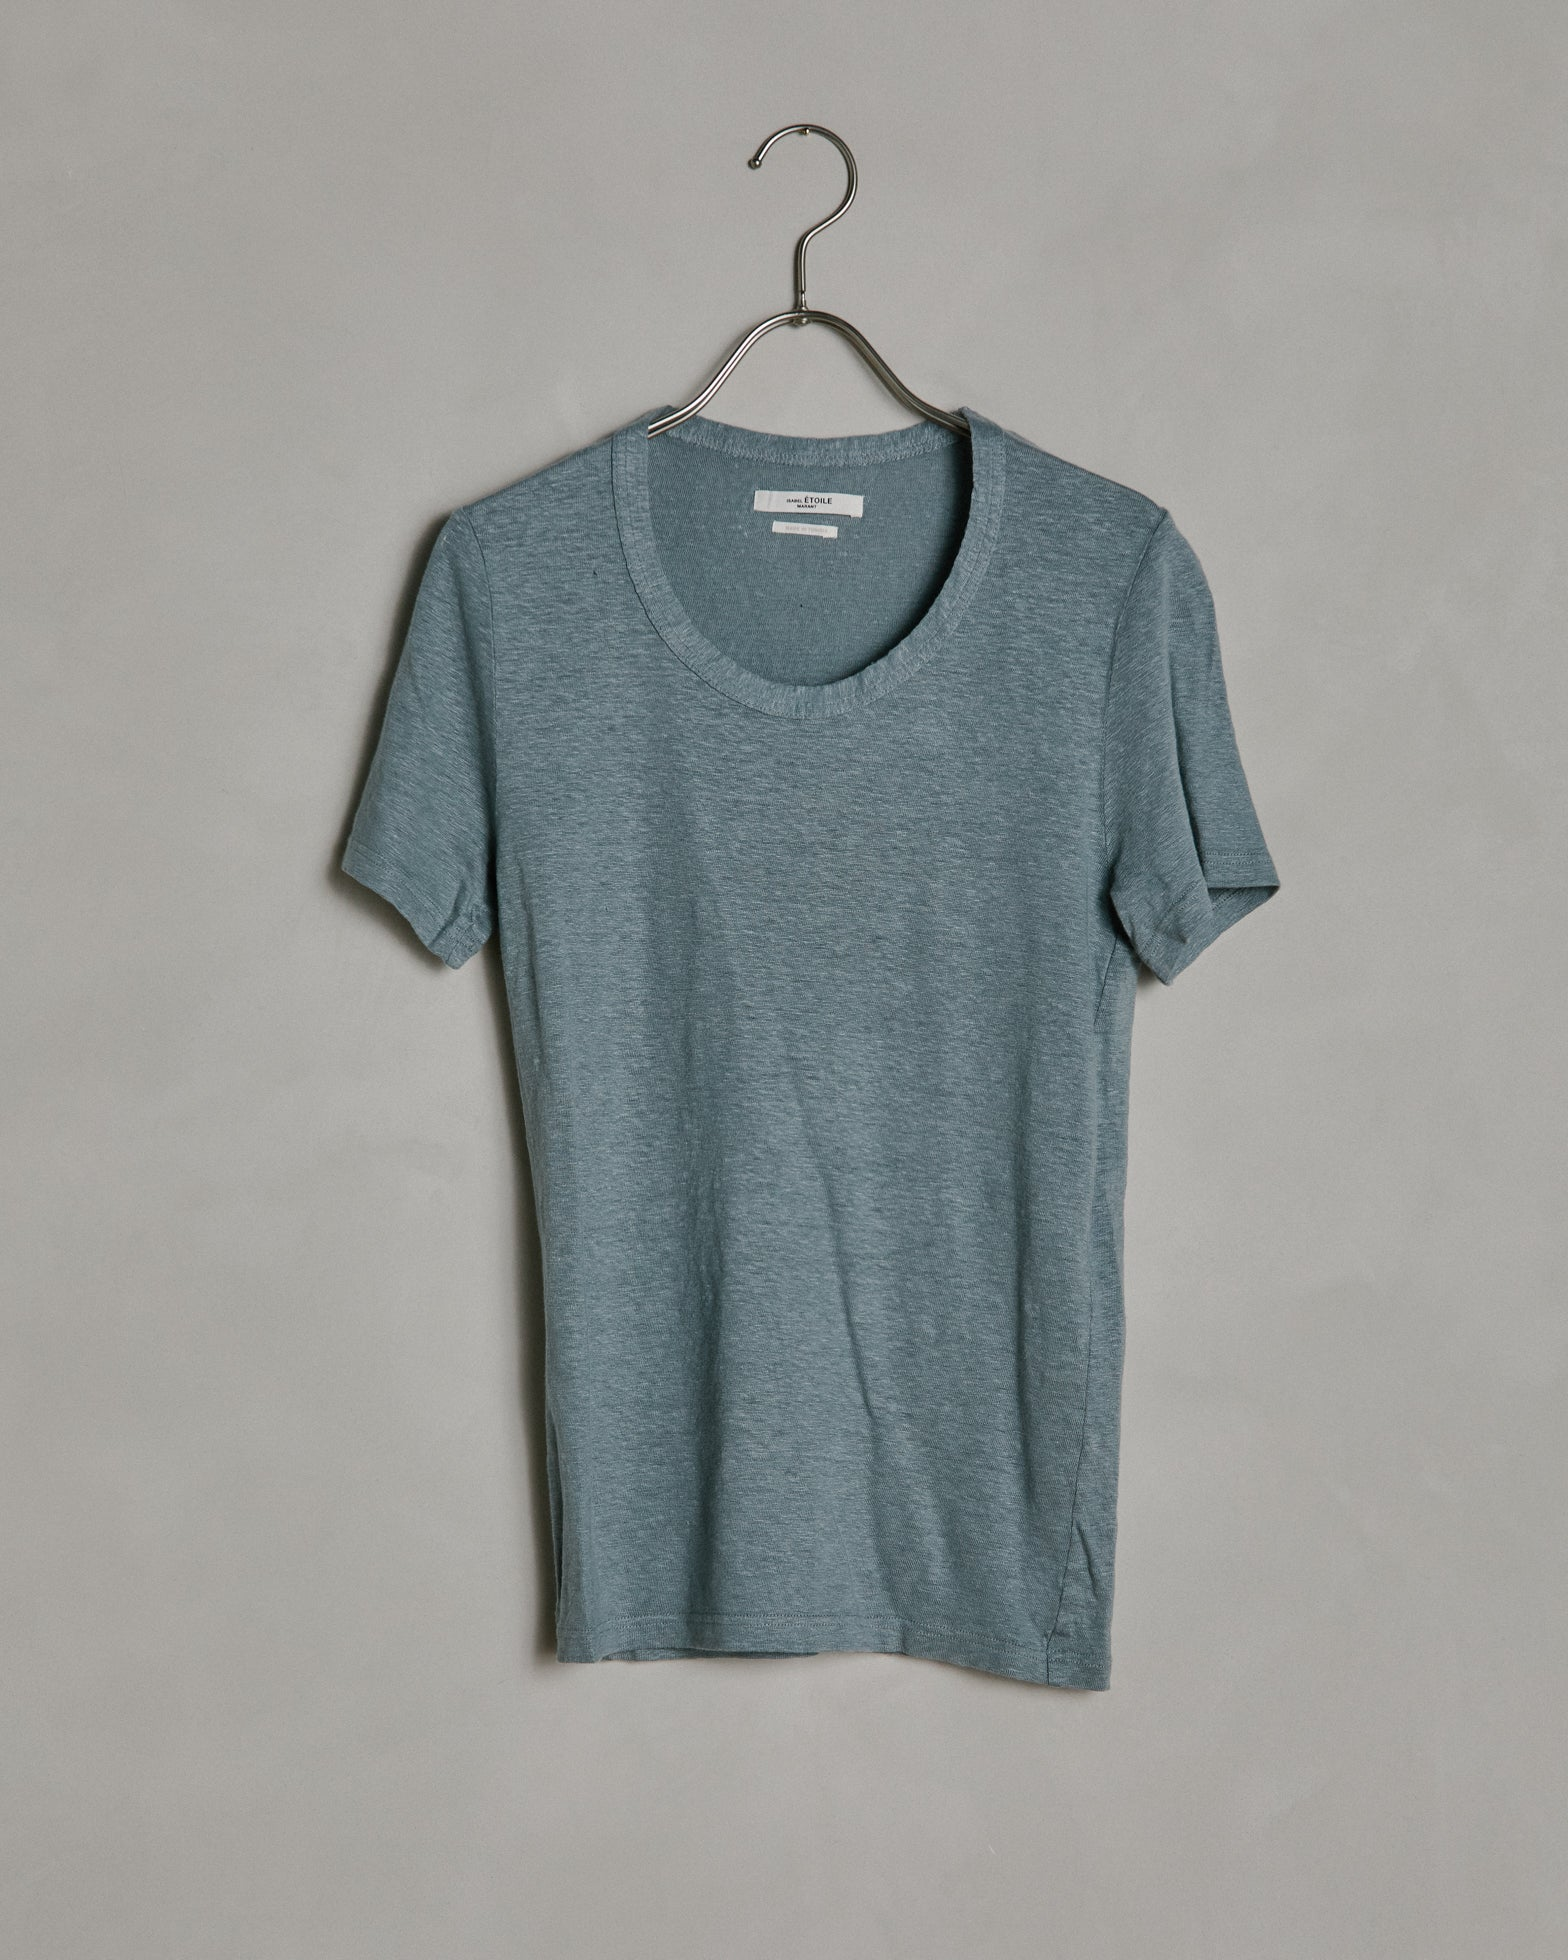 Kiliann T-Shirt in Greyish Blue